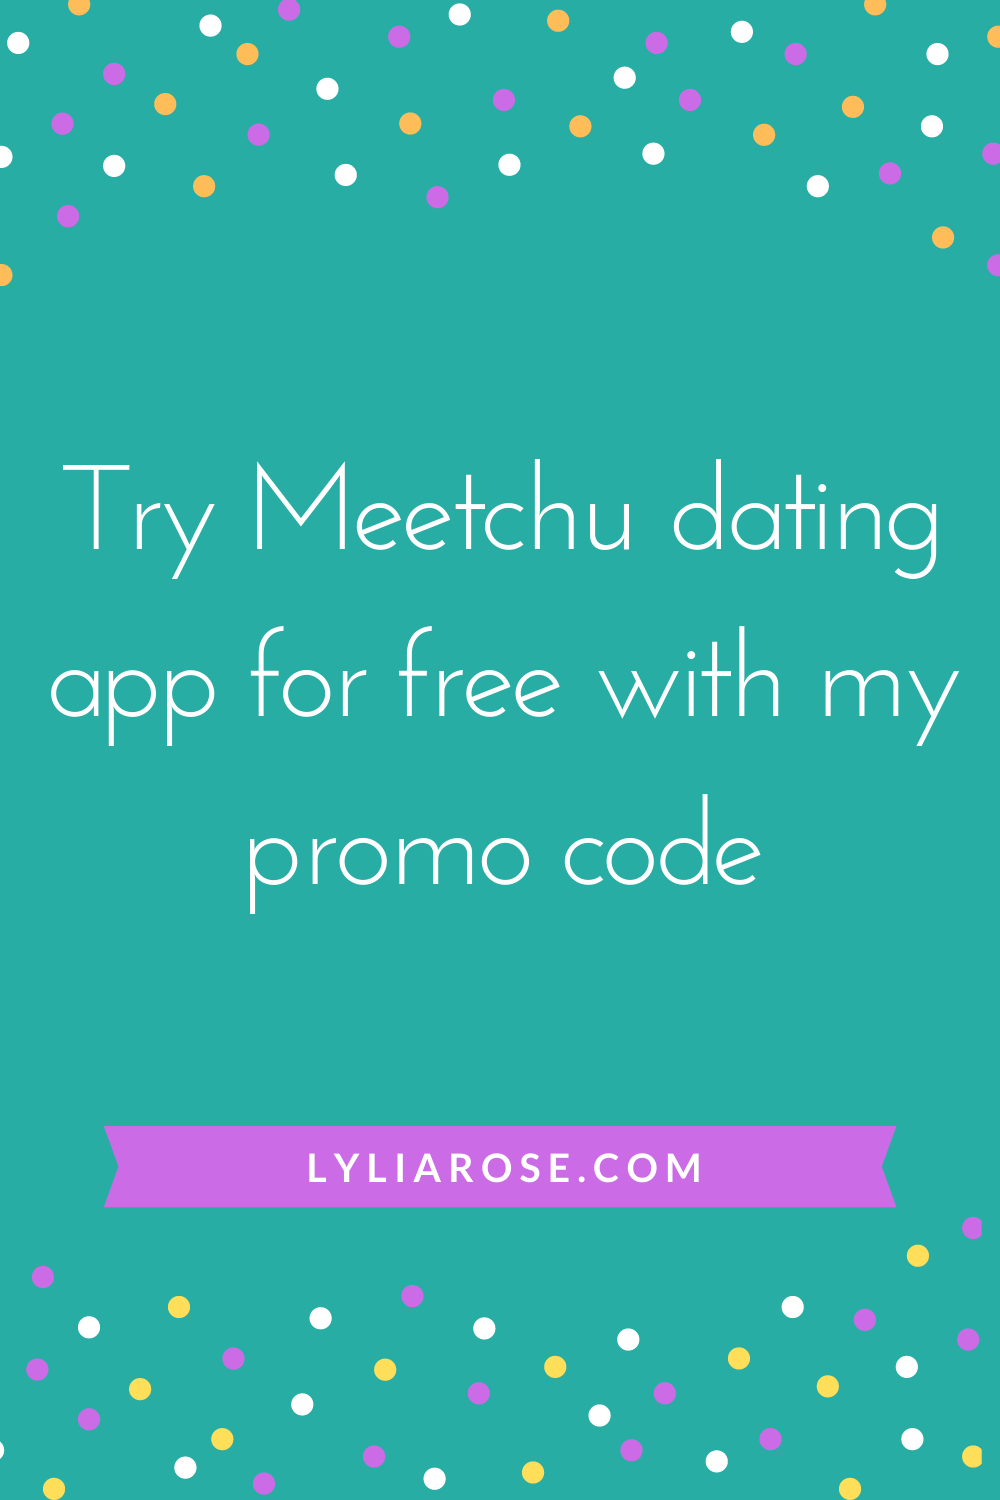 Meet your date before you meet! Try Meetchu dating app for free with my pro